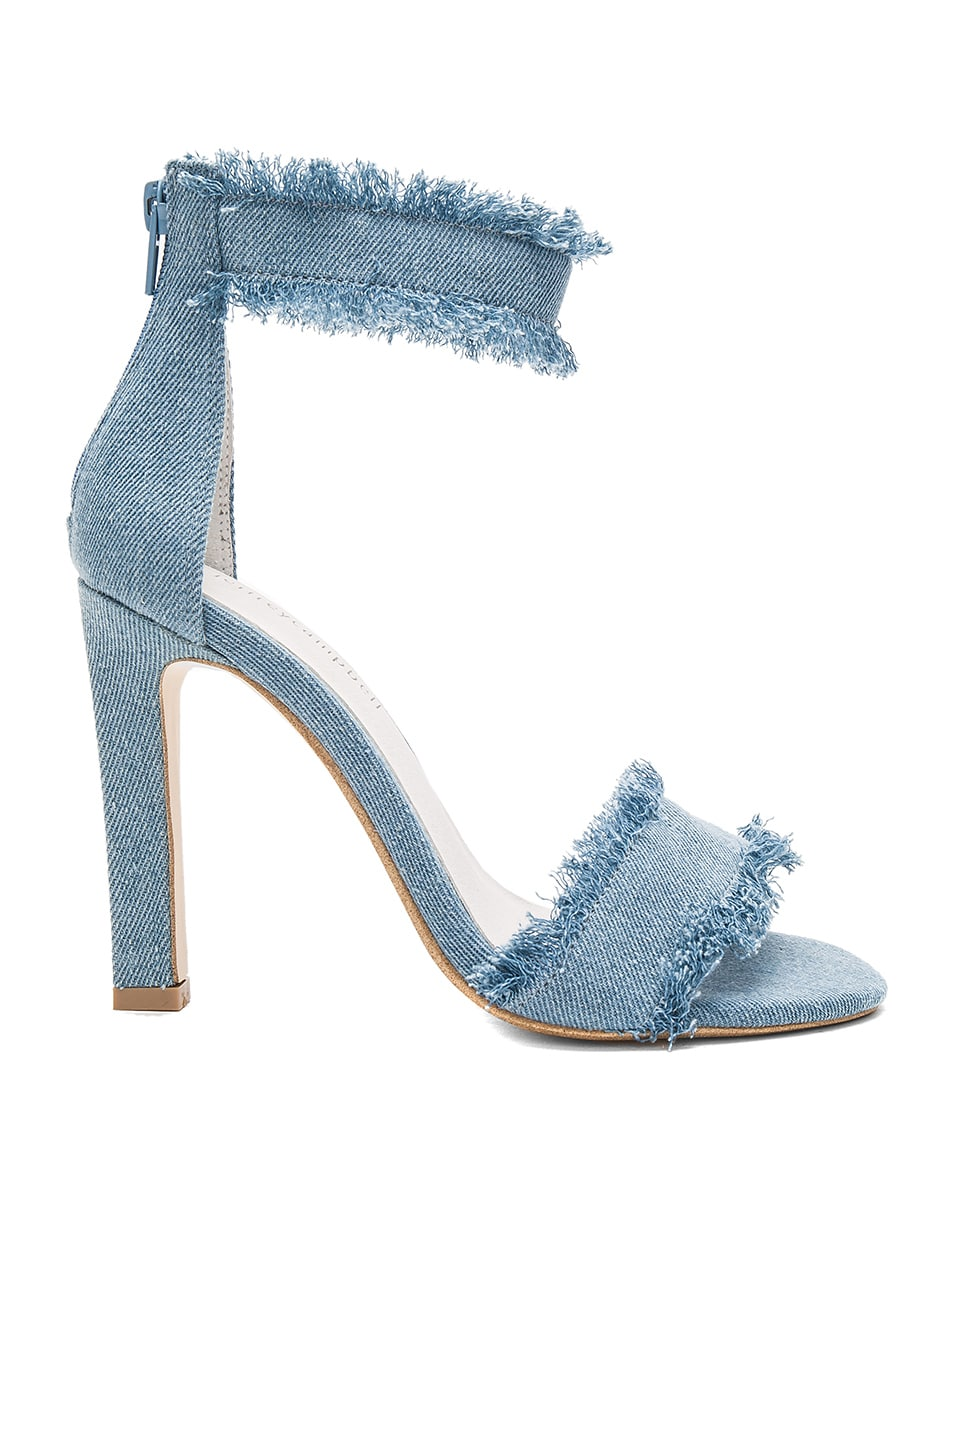 Jeffrey Campbell Inab 2 Heel in Light Blue Denim